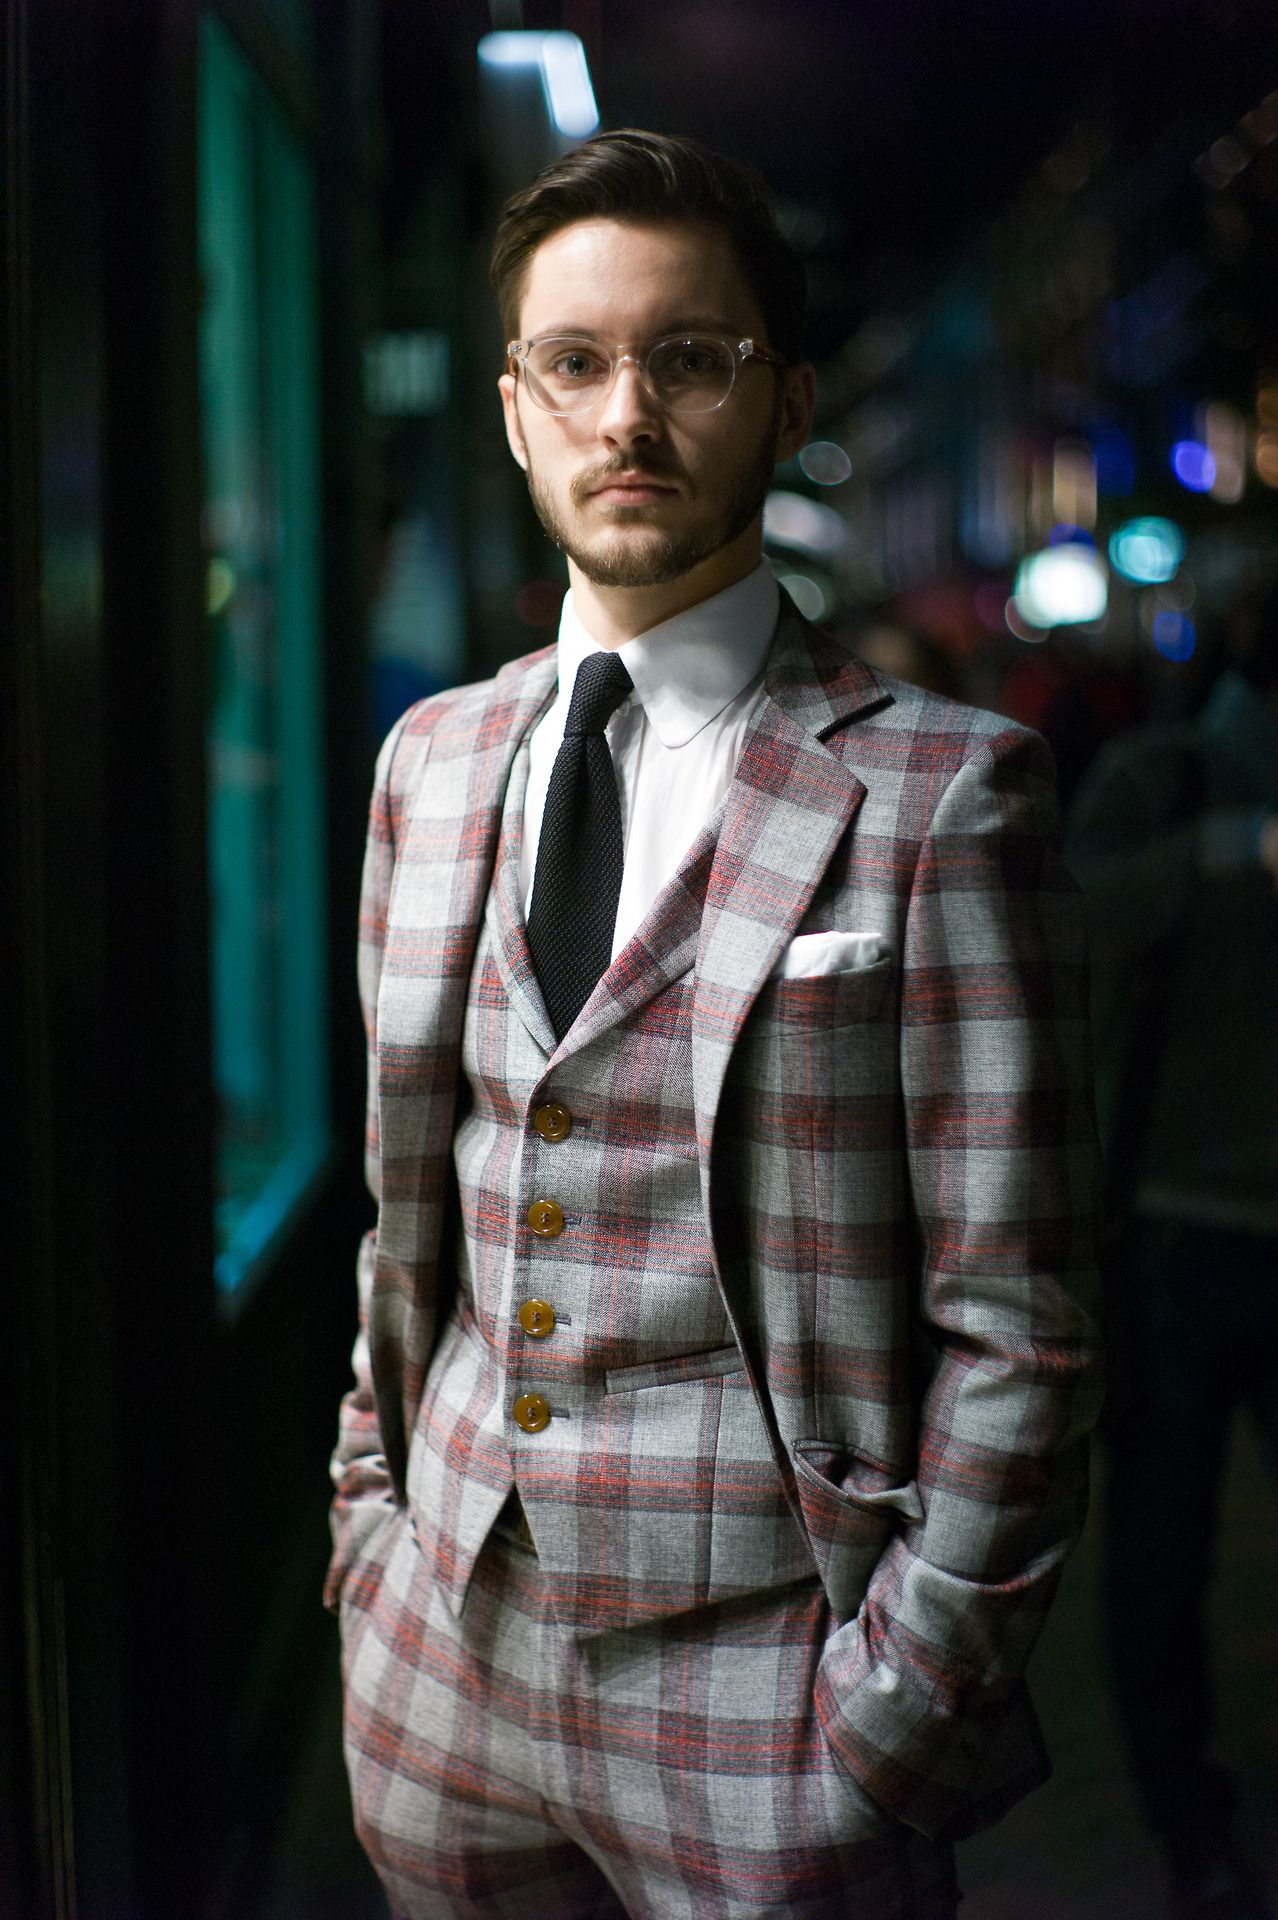 WGSN enjoyed yesterday's @Carnaby London Style Night in association with @BritishGQ Members can check out more shots from the event here  WGSN street shot, Carnaby Style Night